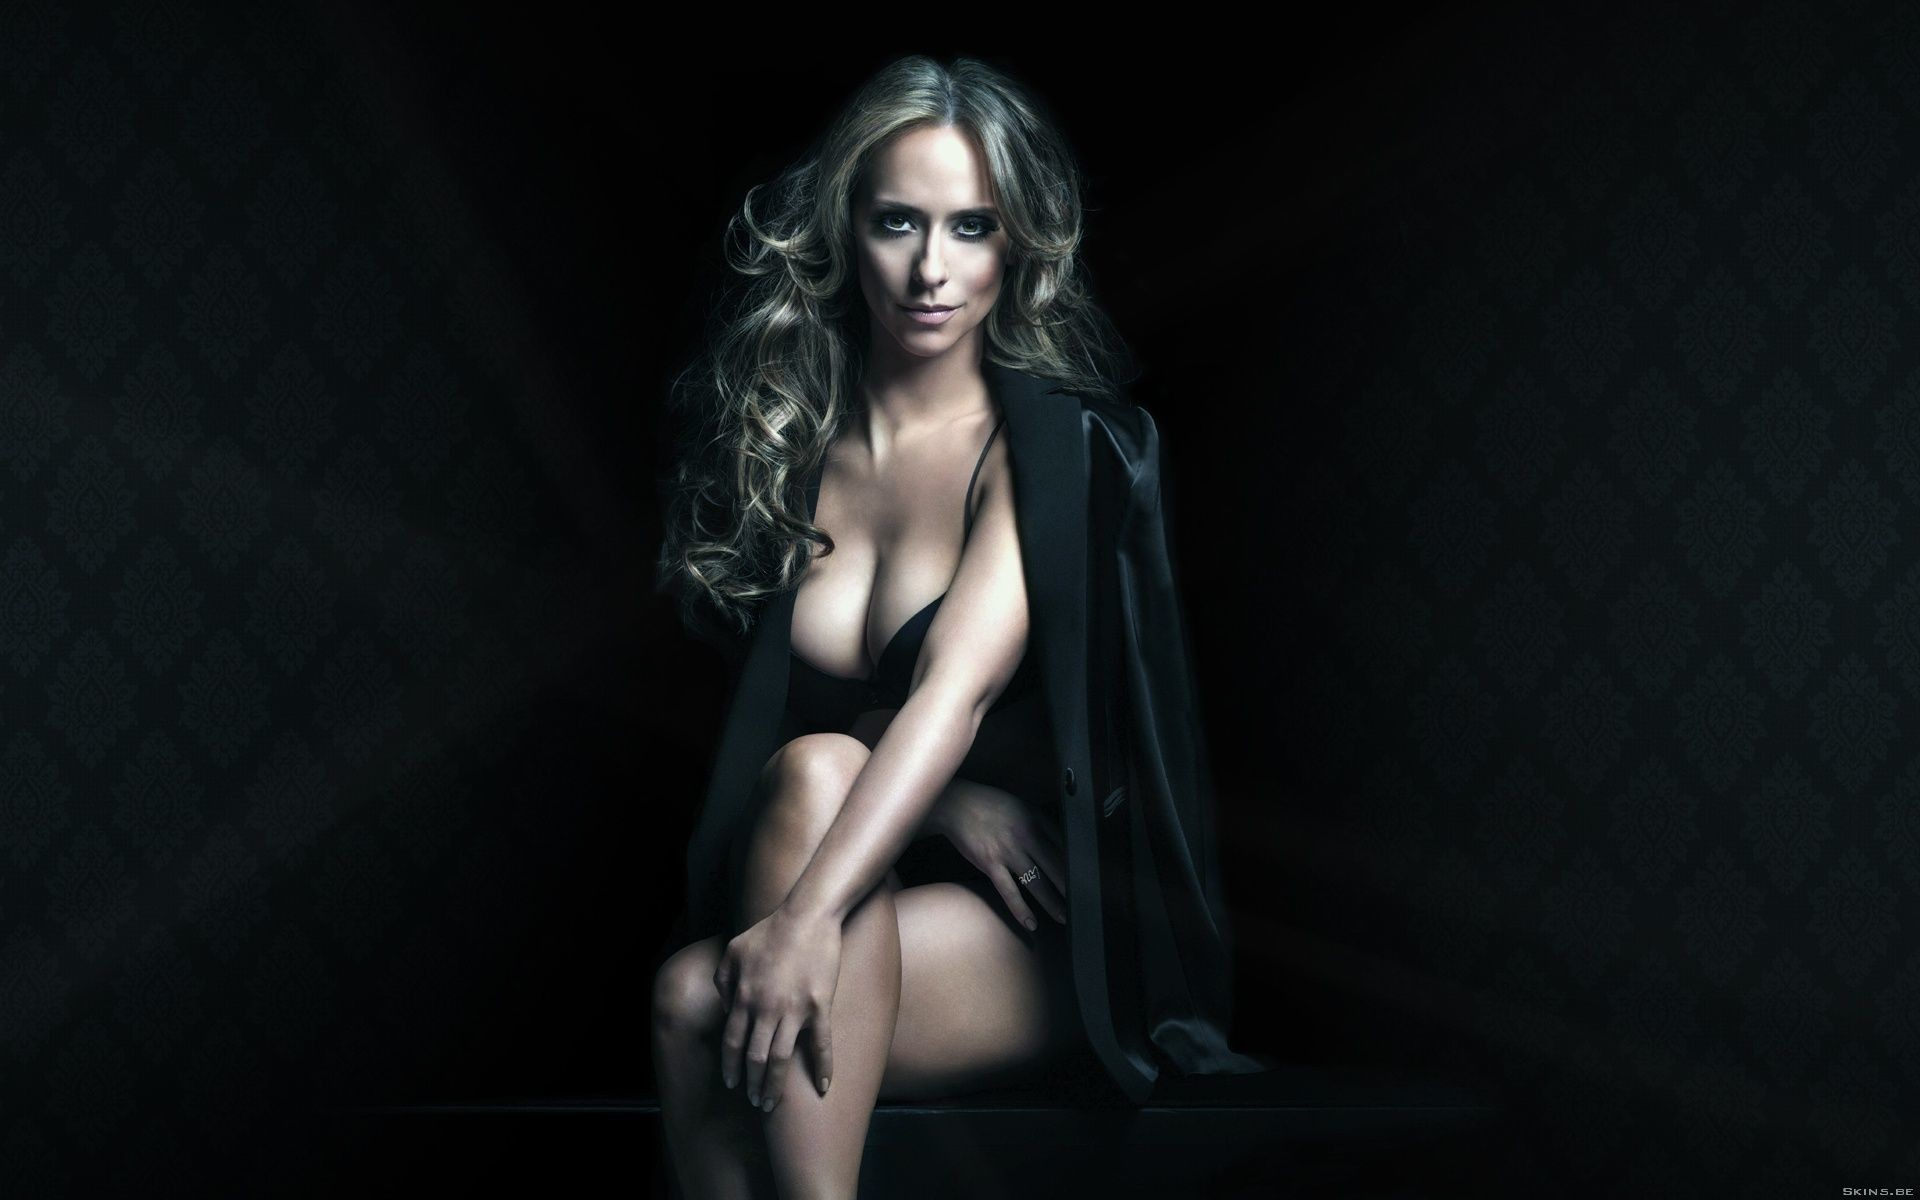 1920x1200 POK PEK PAK POK Jennifer Love Hewitt Wallpapers Pictures and Images